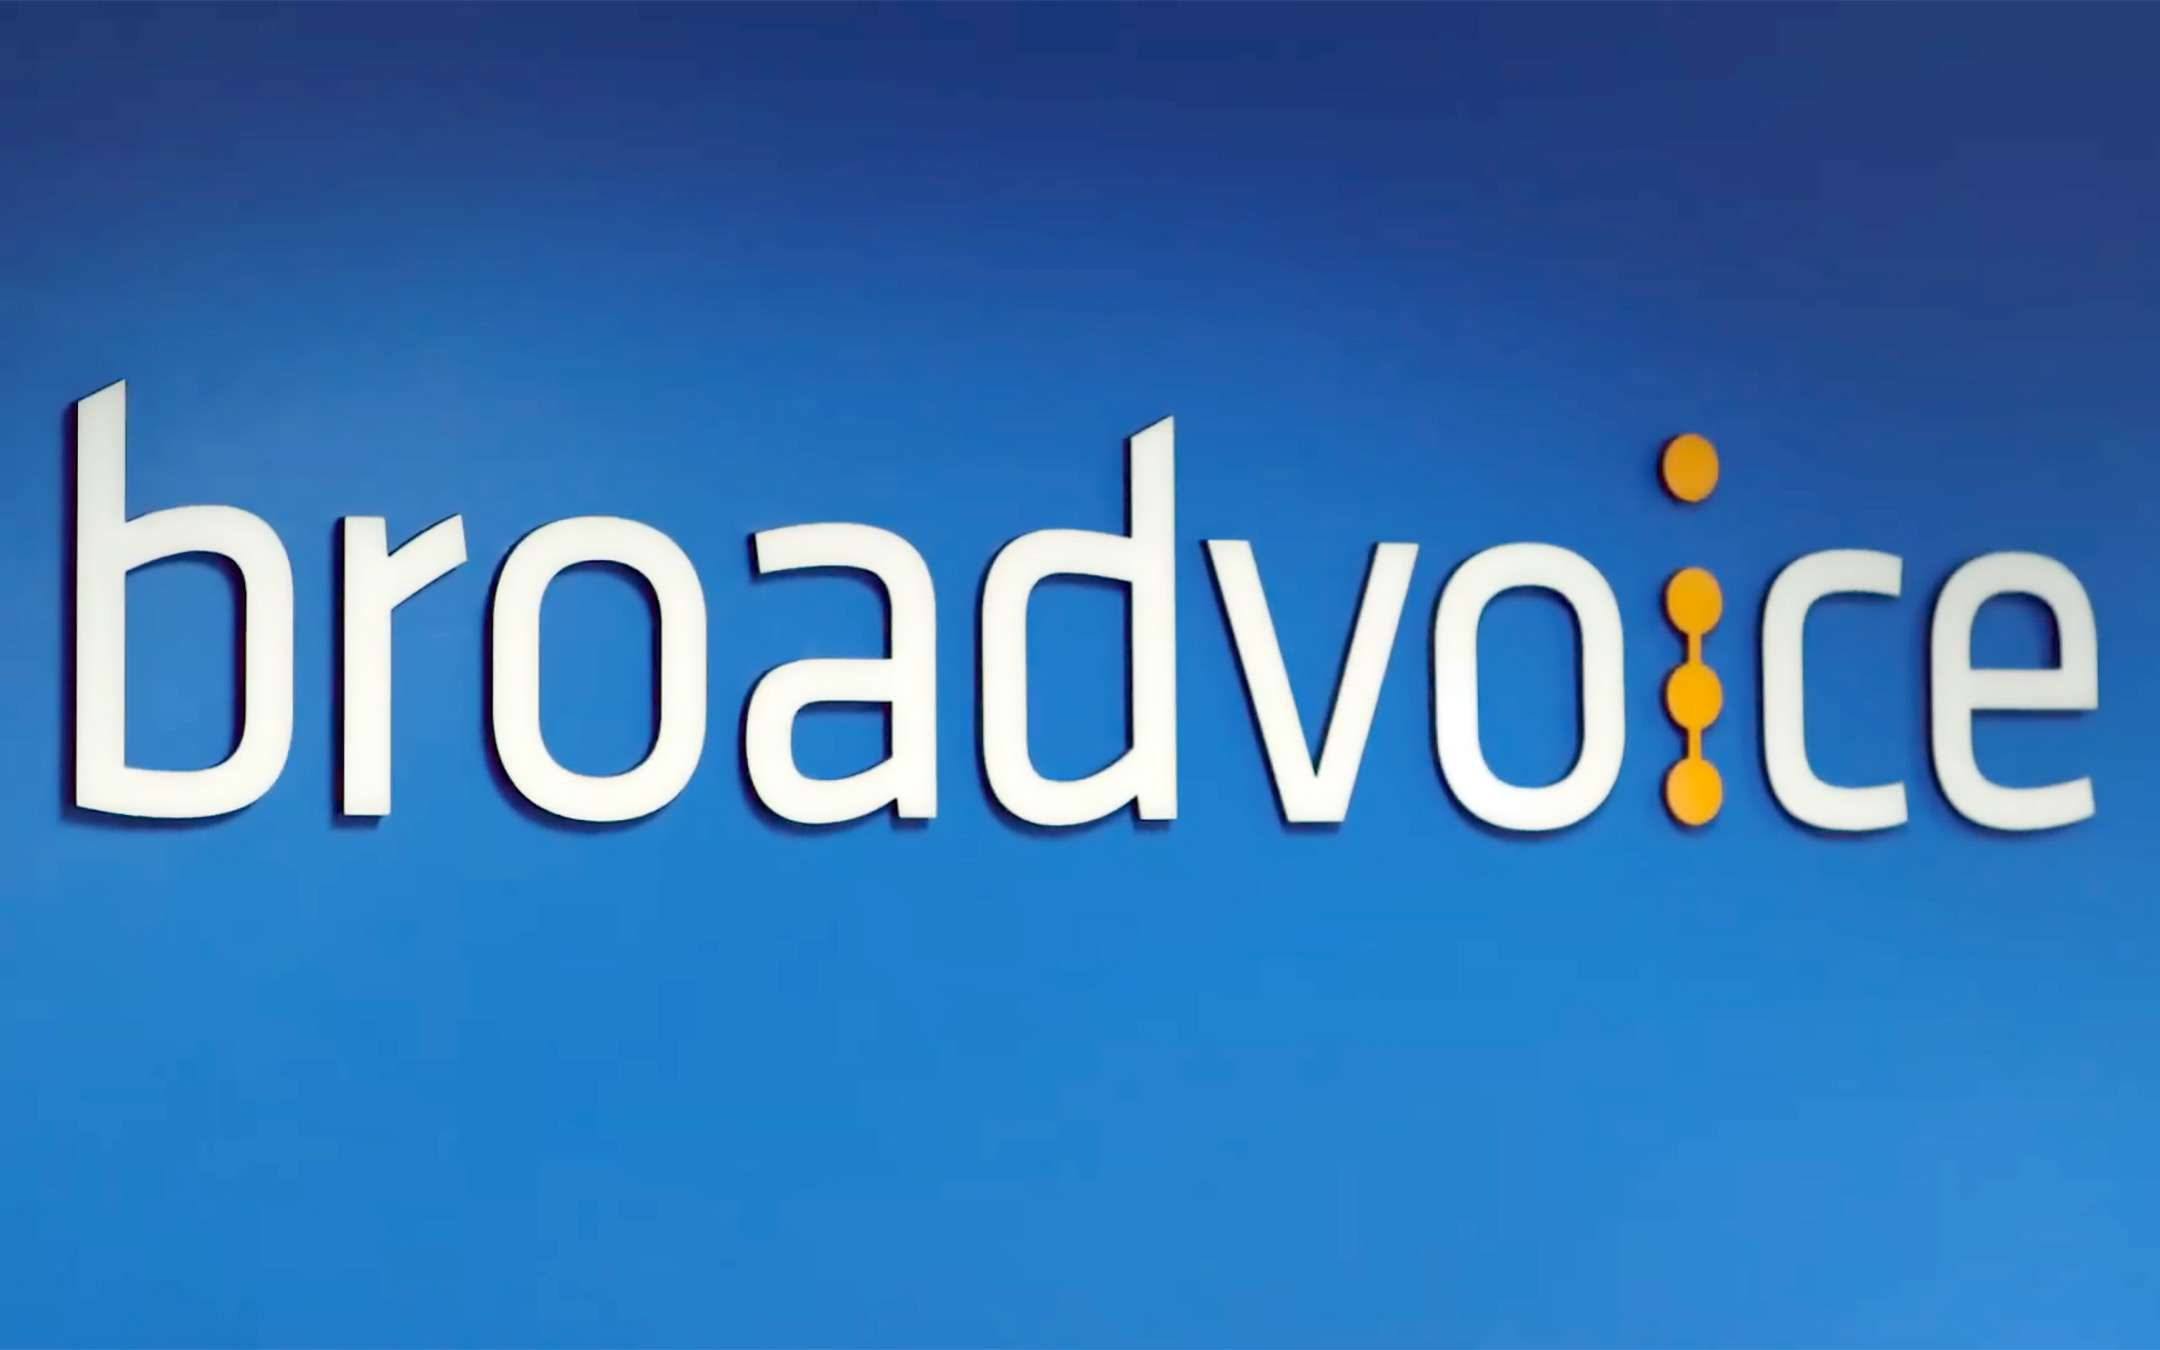 Broadvoice leak: voicemail and transcripts exposed